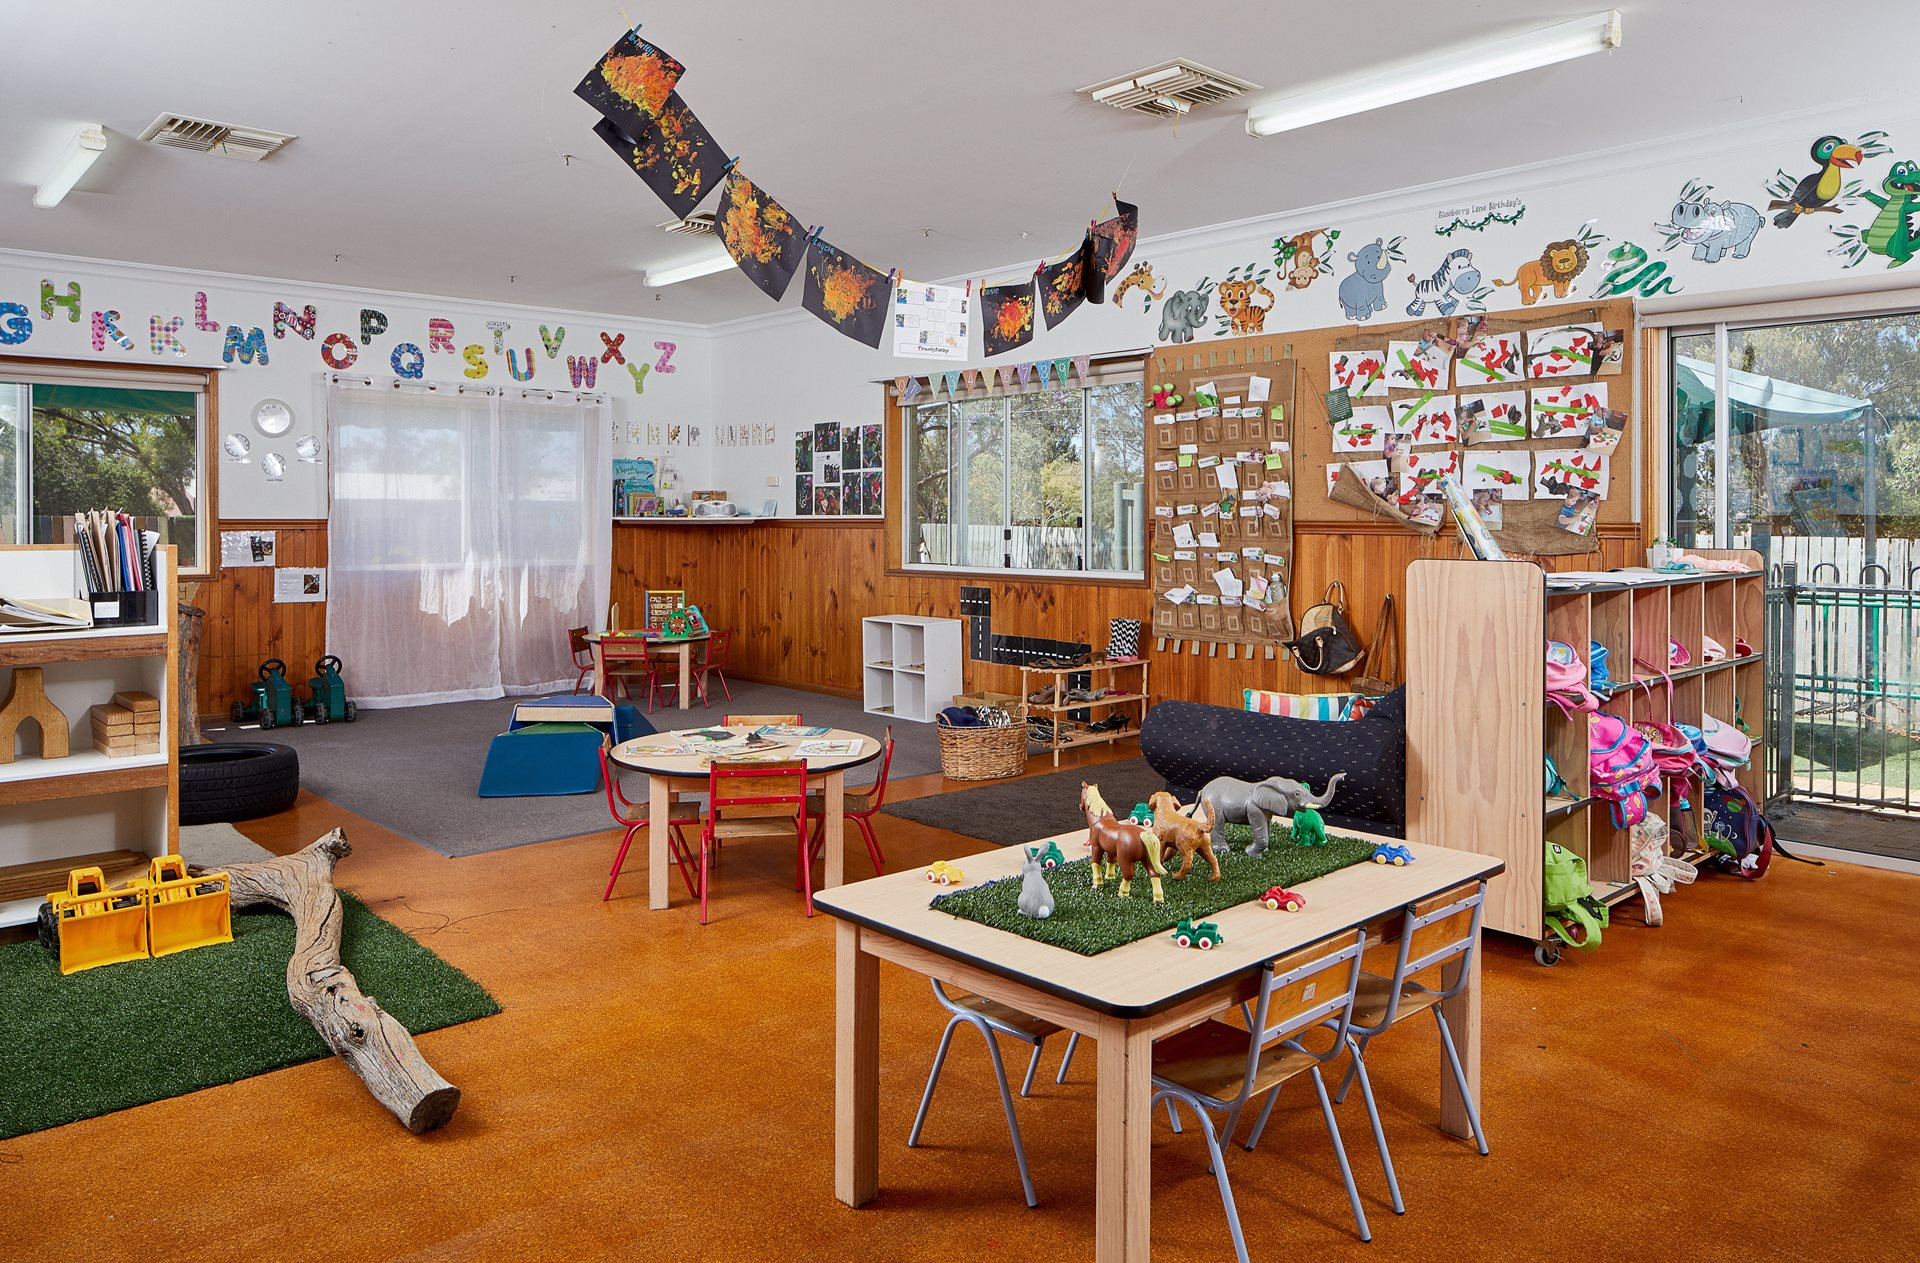 Child care centre room with farm animals set up on table